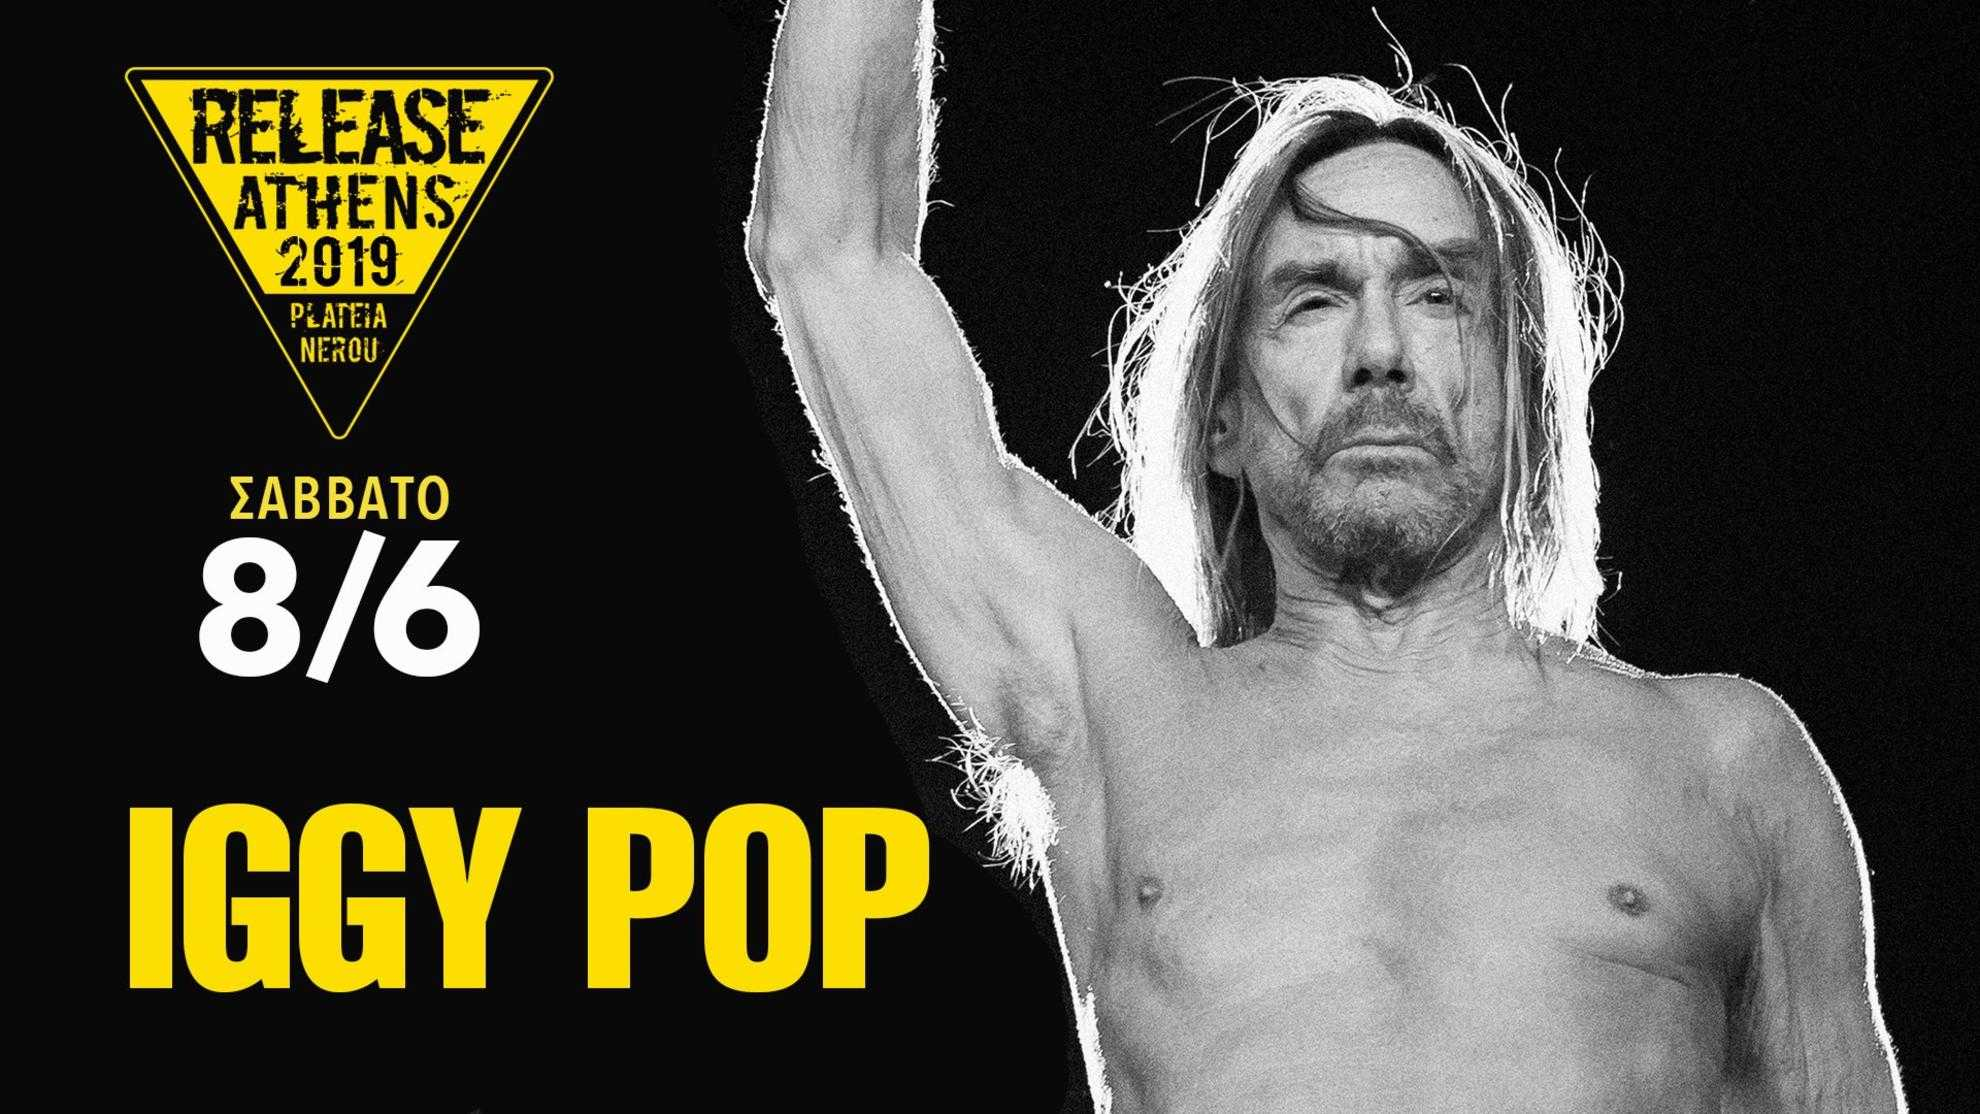 Λεπτό προς Λεπτό - Release Athens 2019 - Day 2: Iggy Pop, James, Shame, Noise Figures, Dark Rags